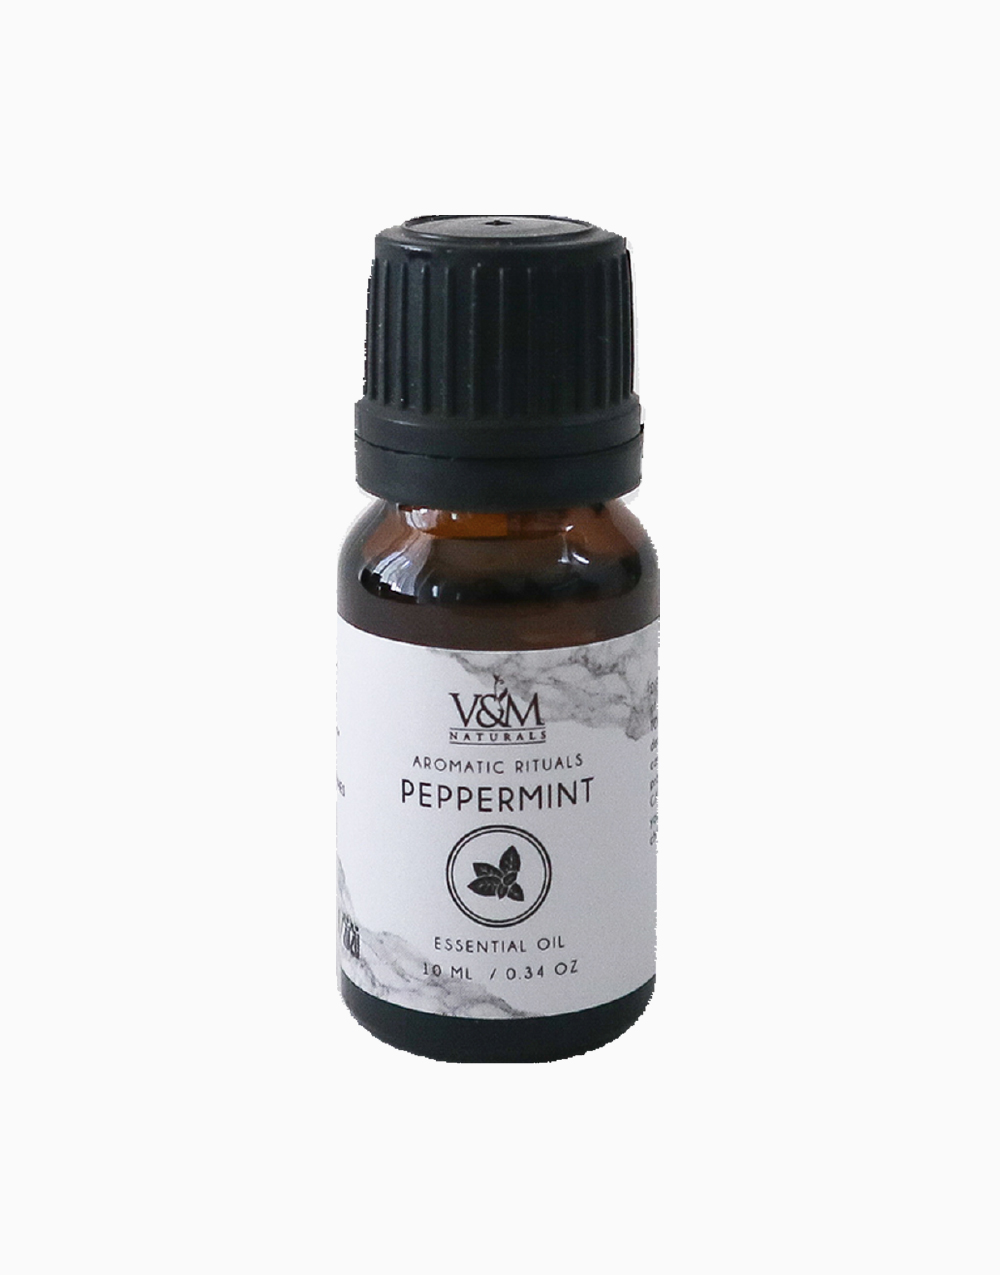 Peppermint Essential Oil by V&M Naturals